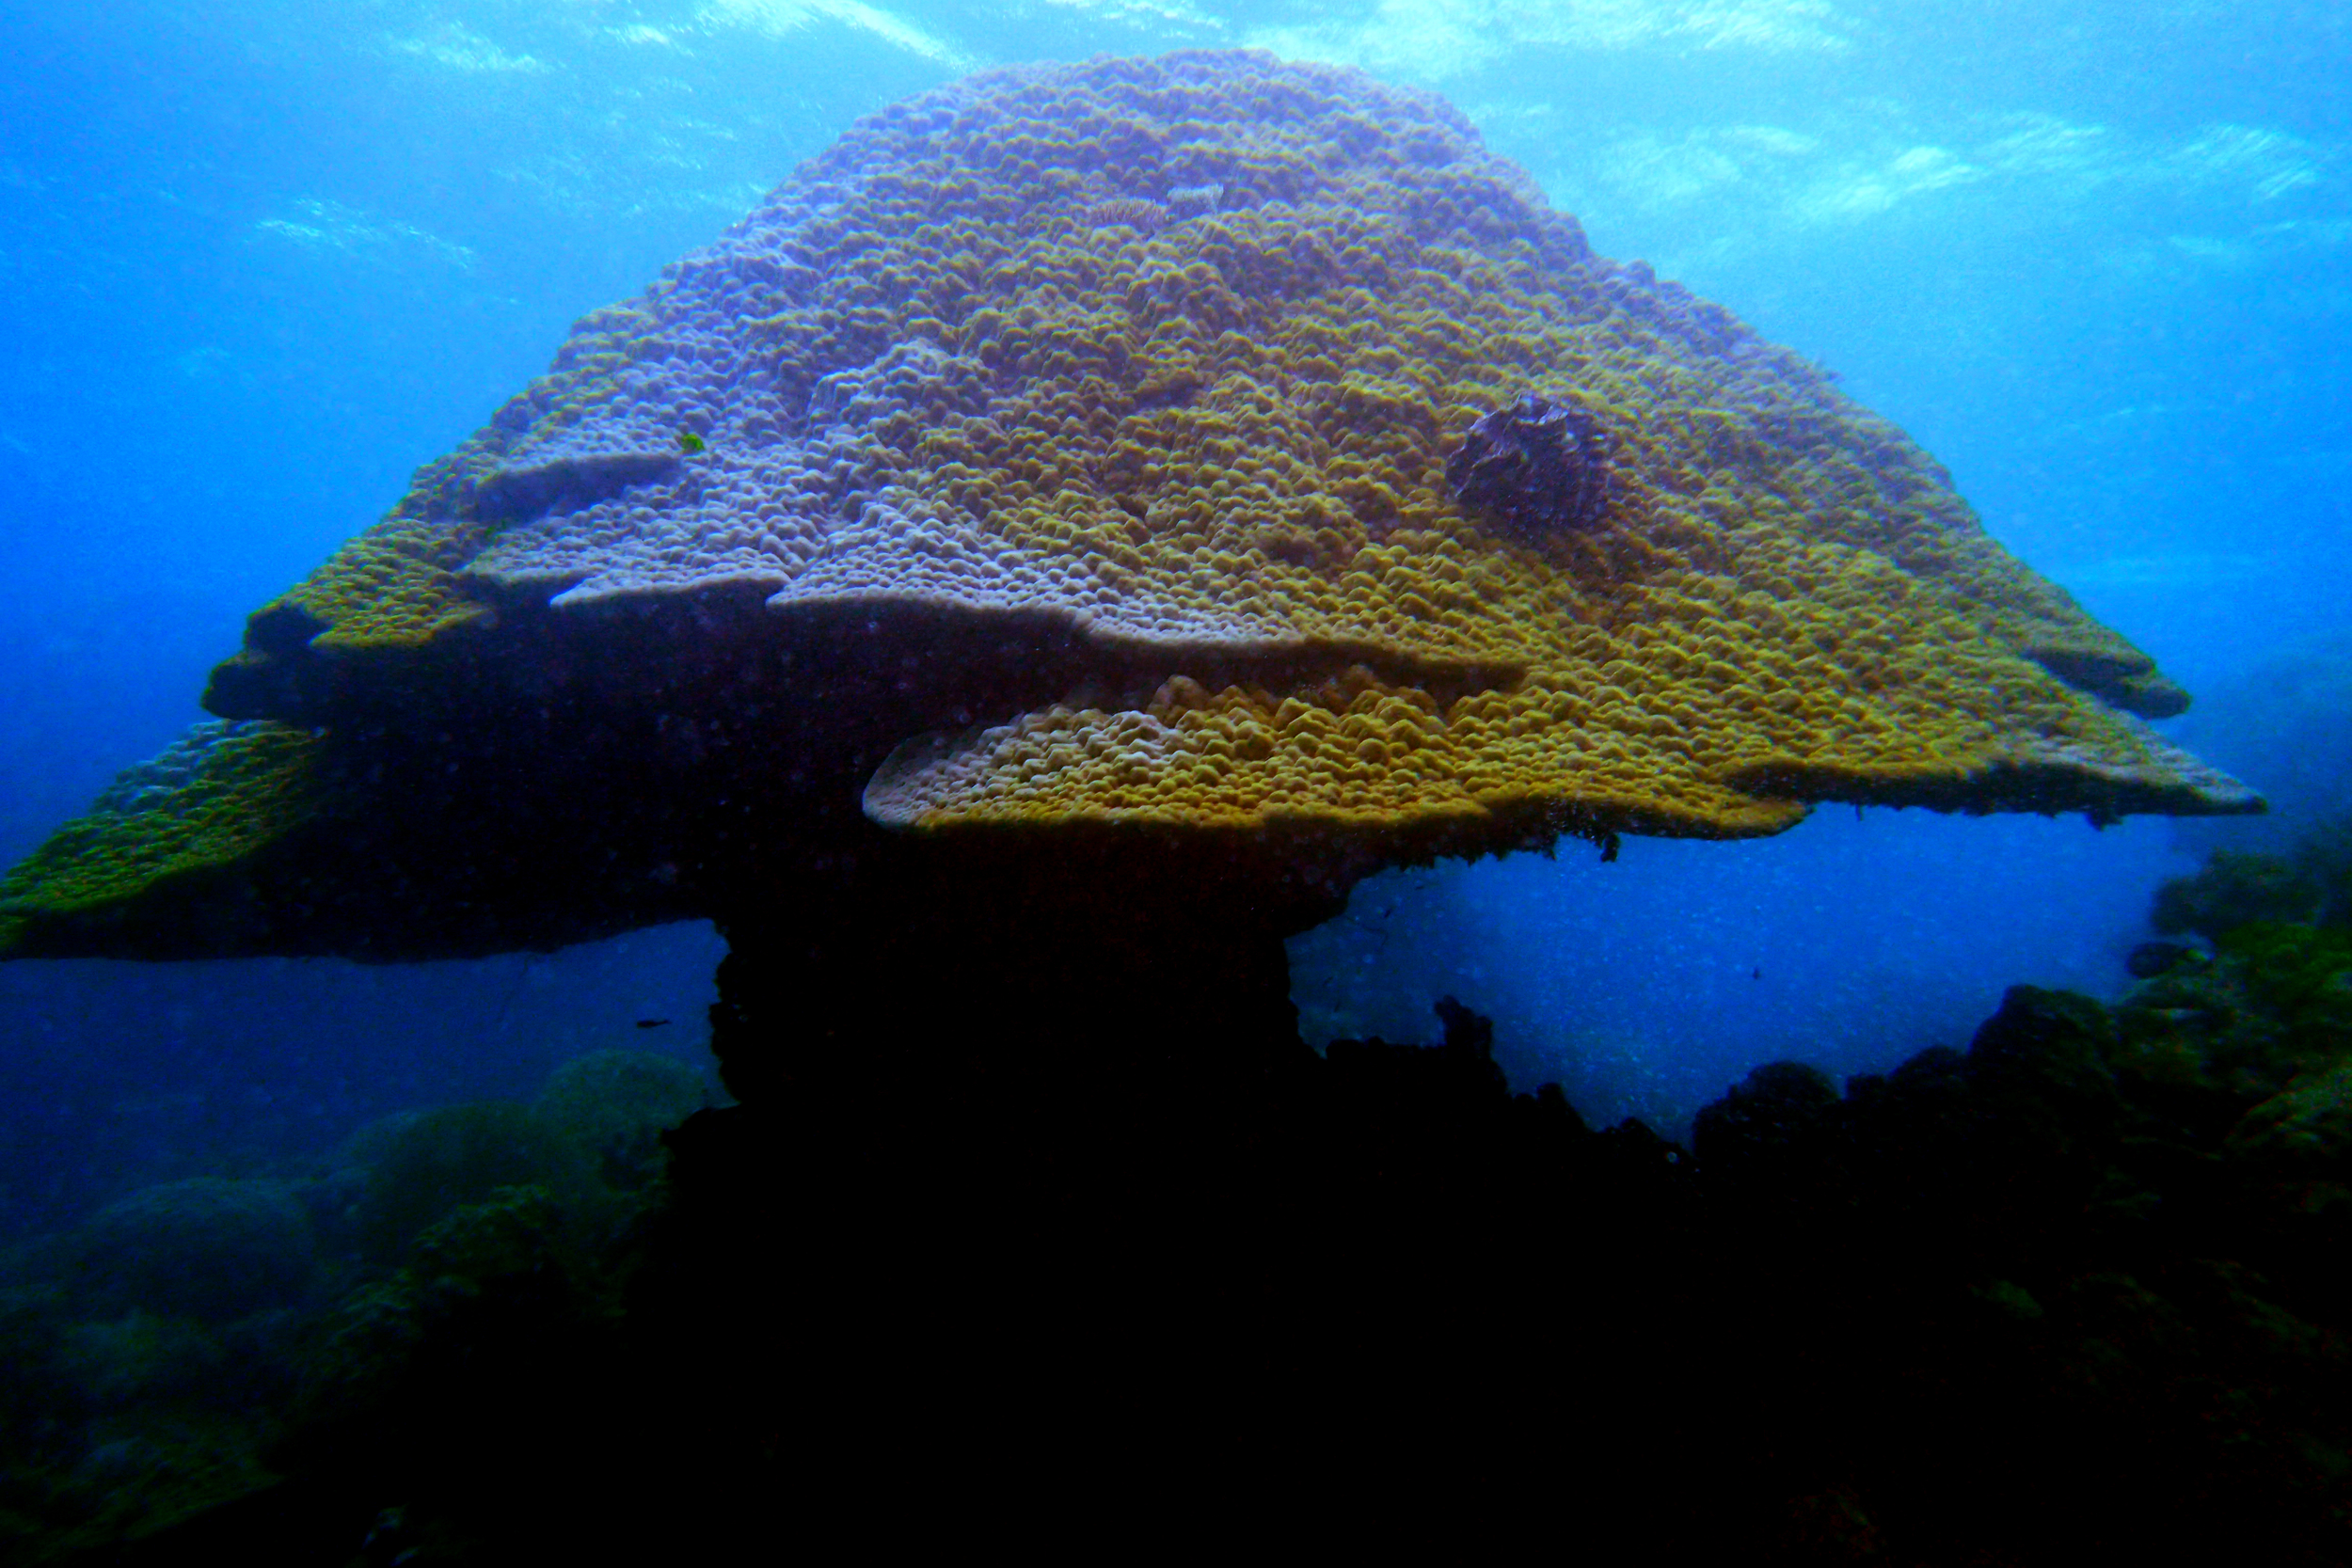 Huge mushroom shaped coral